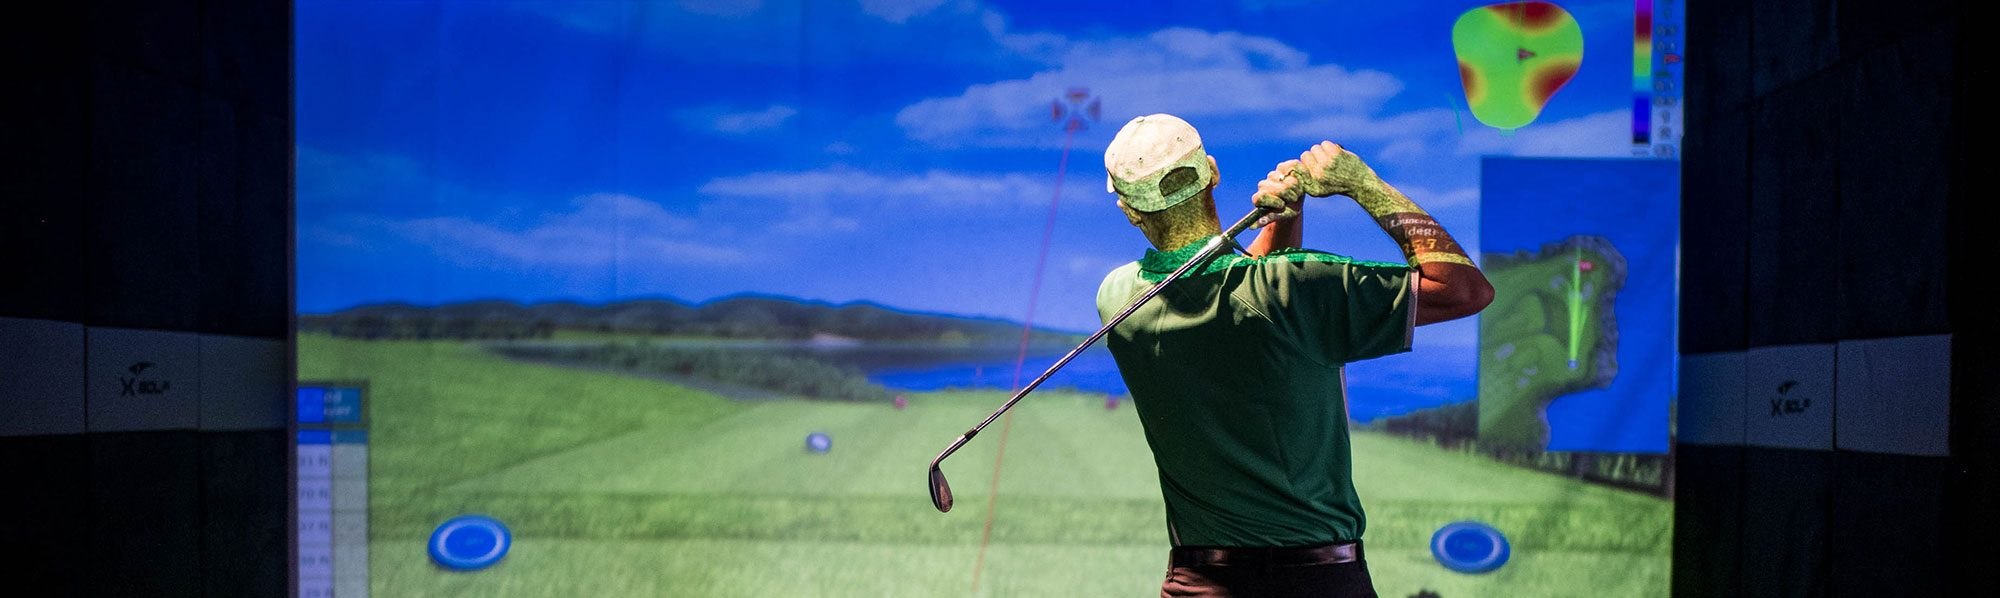 Image of man watching his golf shot in simulator bay